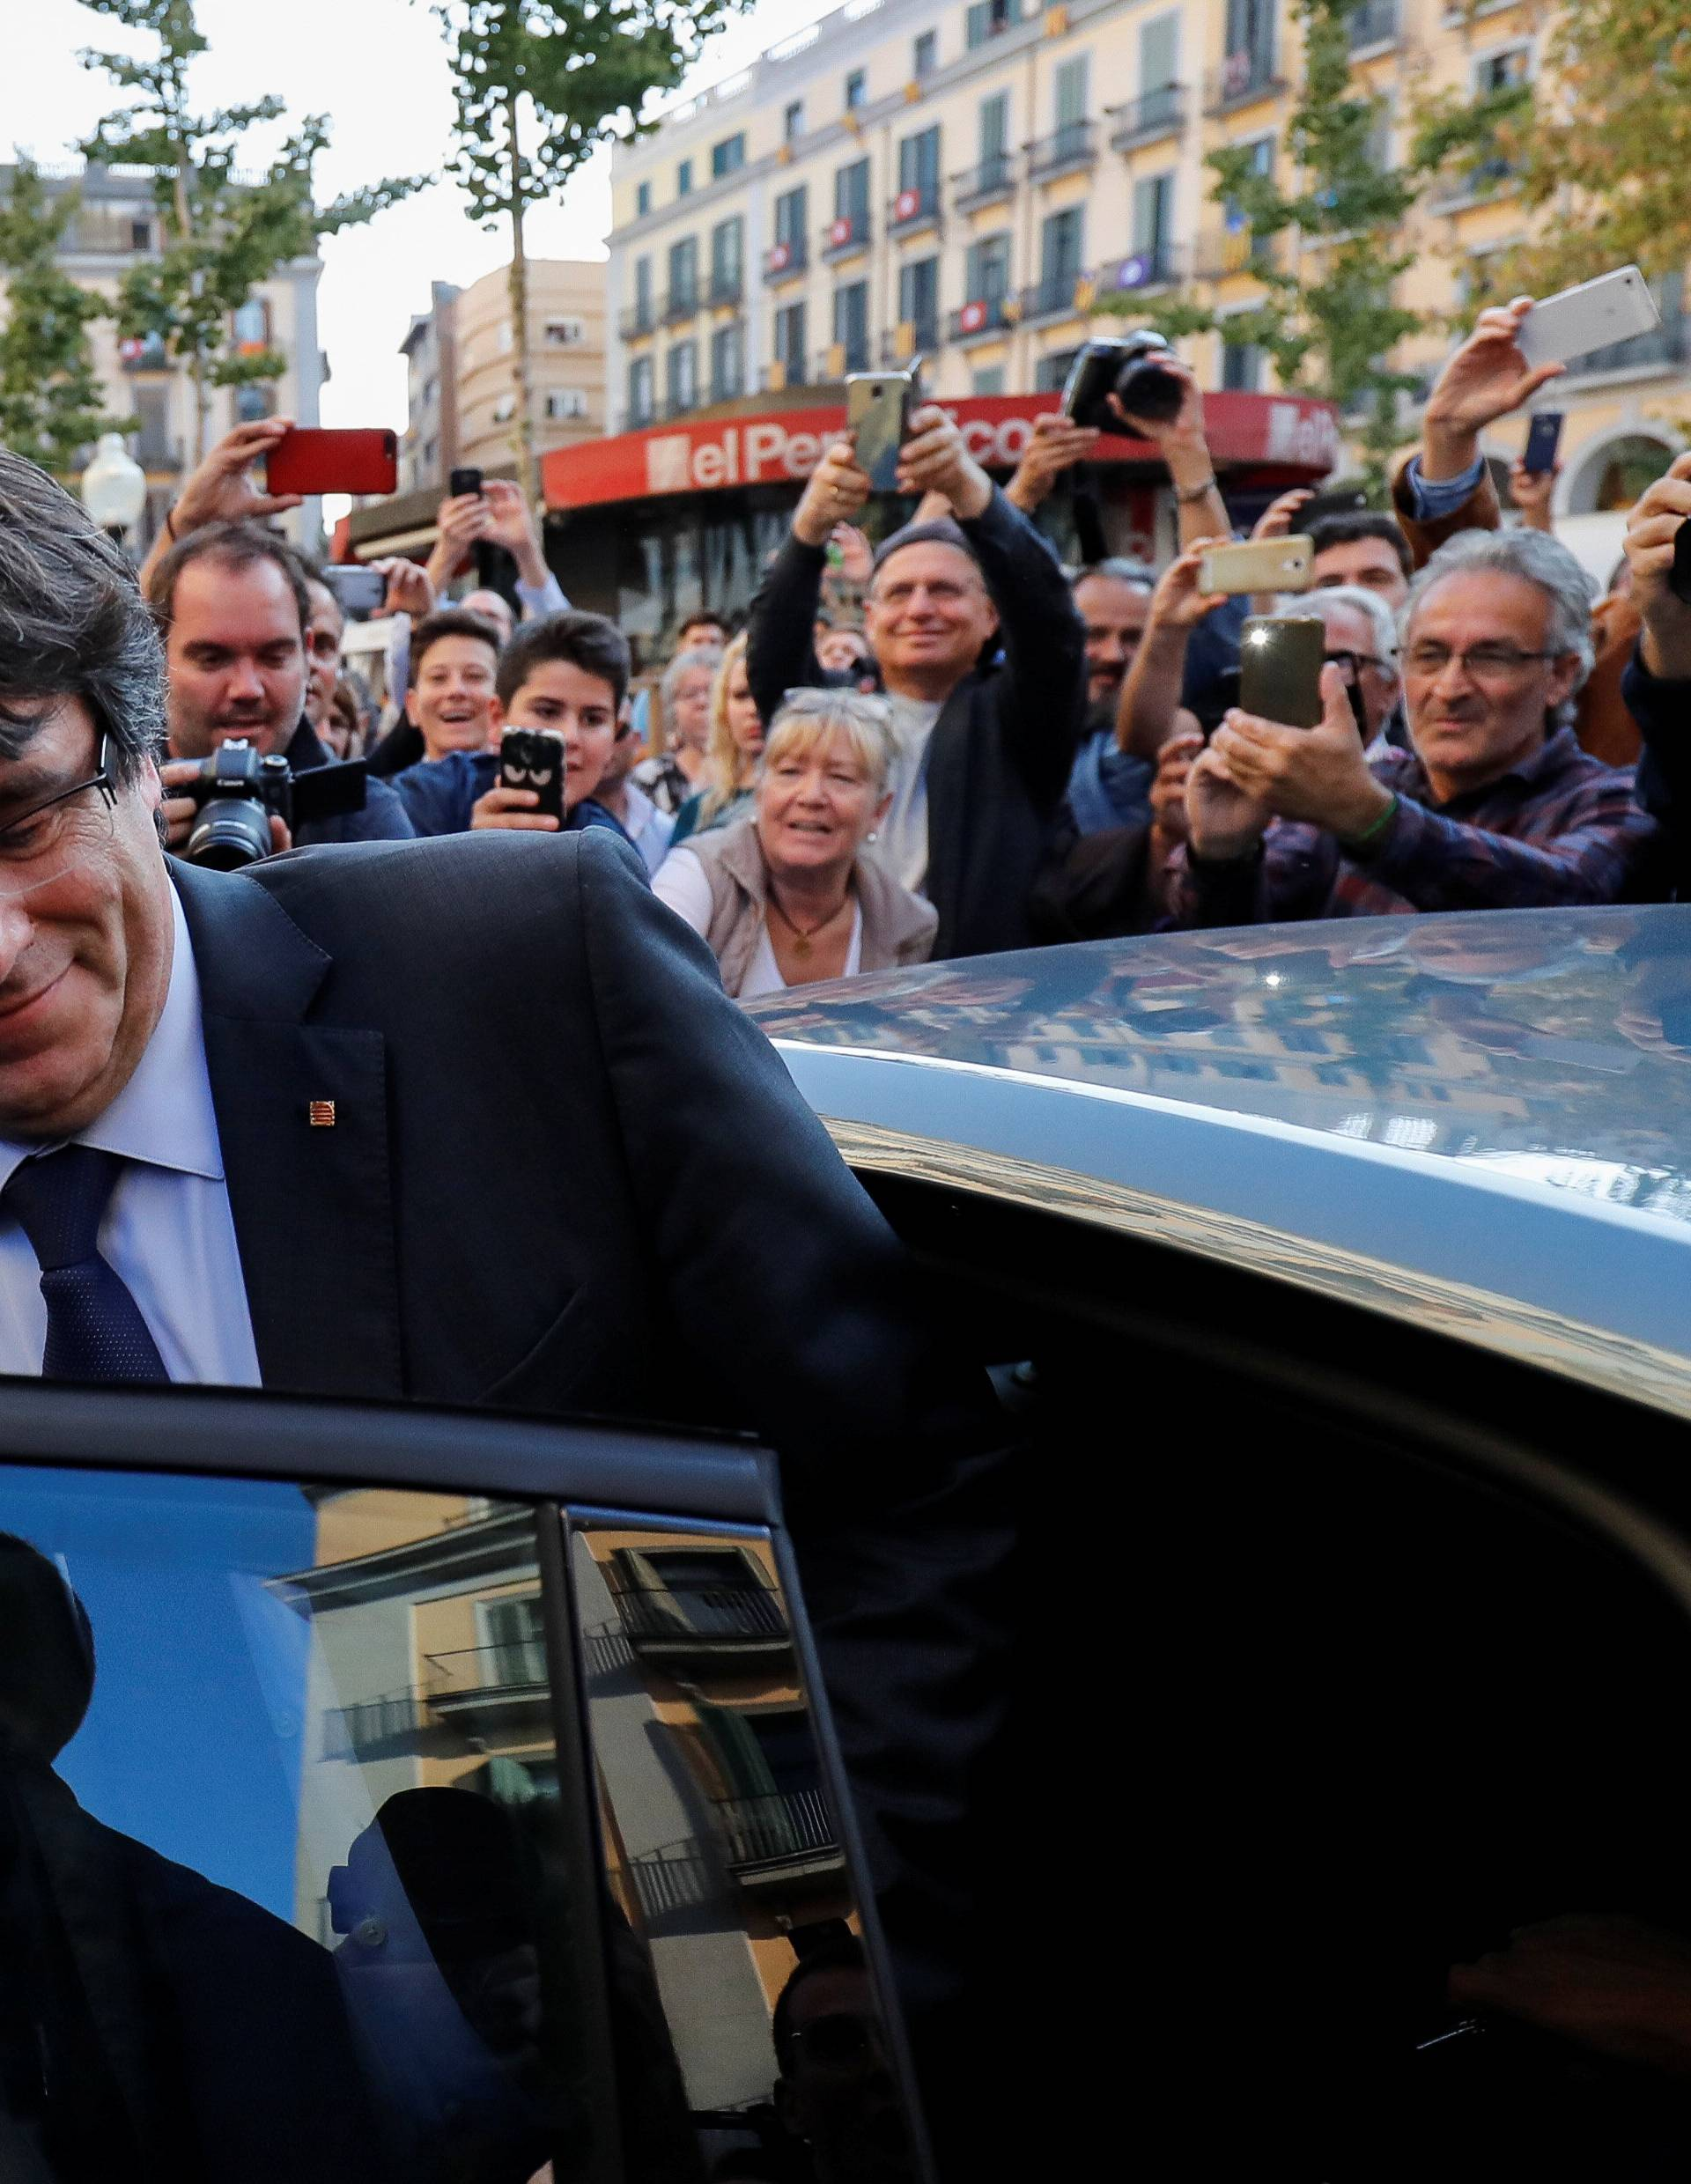 Sacked Catalan President Carles Puigdemont gets into his car after a walkabout through the center of town the day after the Catalan regional parliament declared independence from Spain in Girona